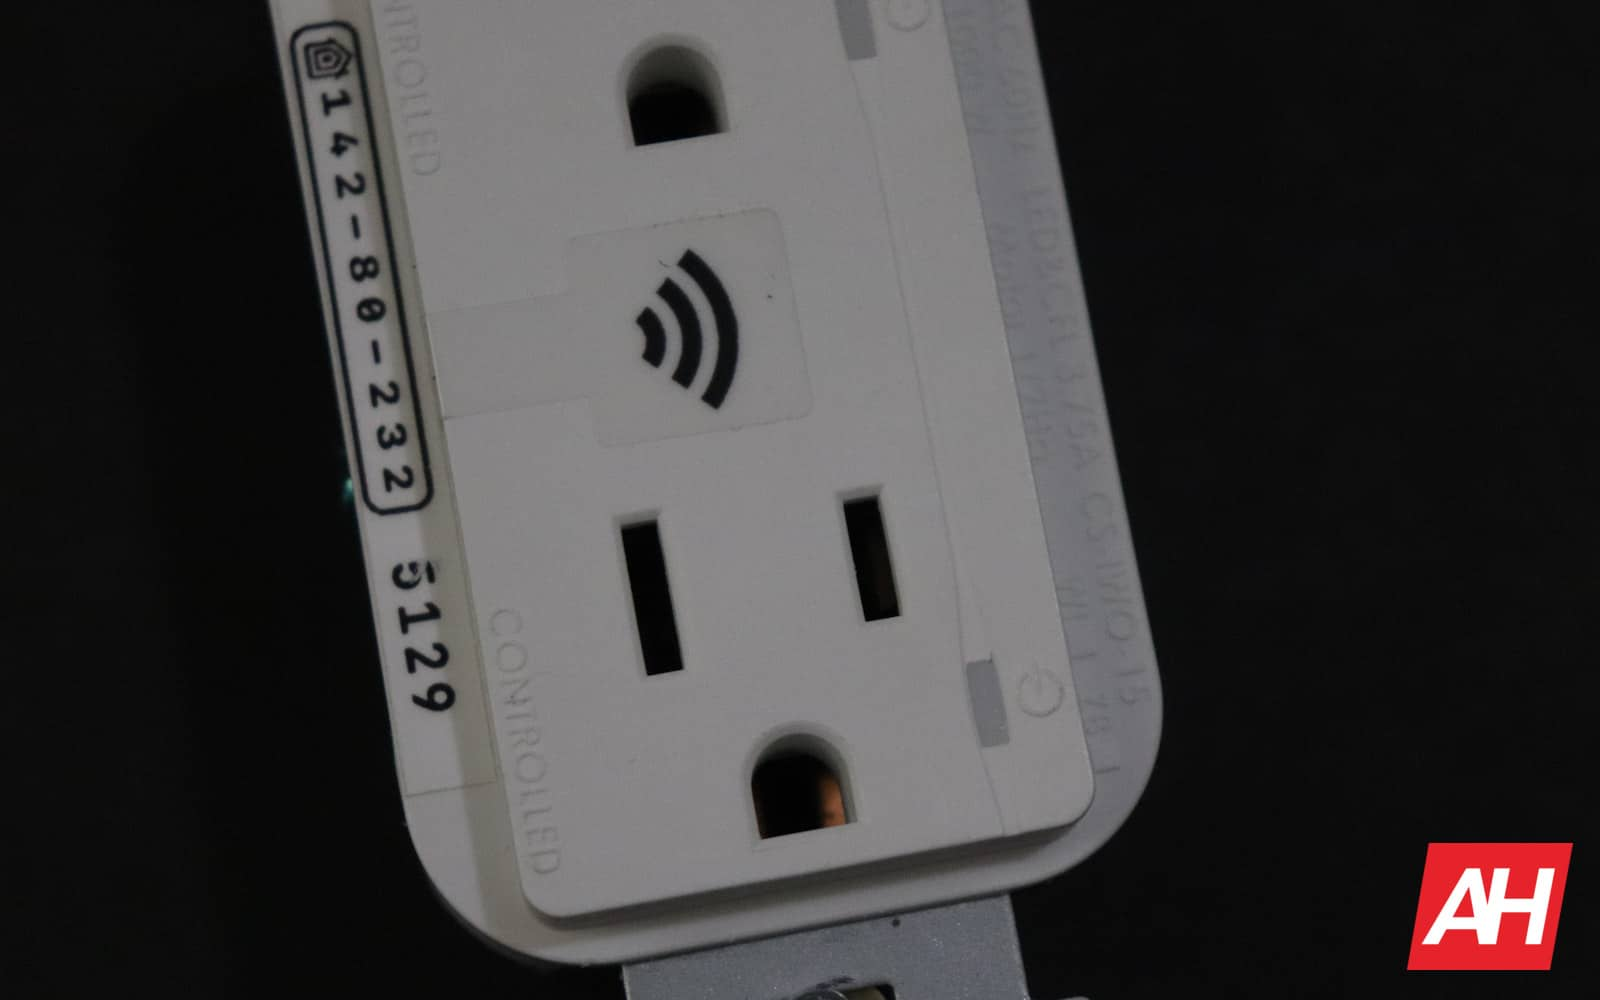 ConnectSense In Wall Outlet Review 02 8 Hardware